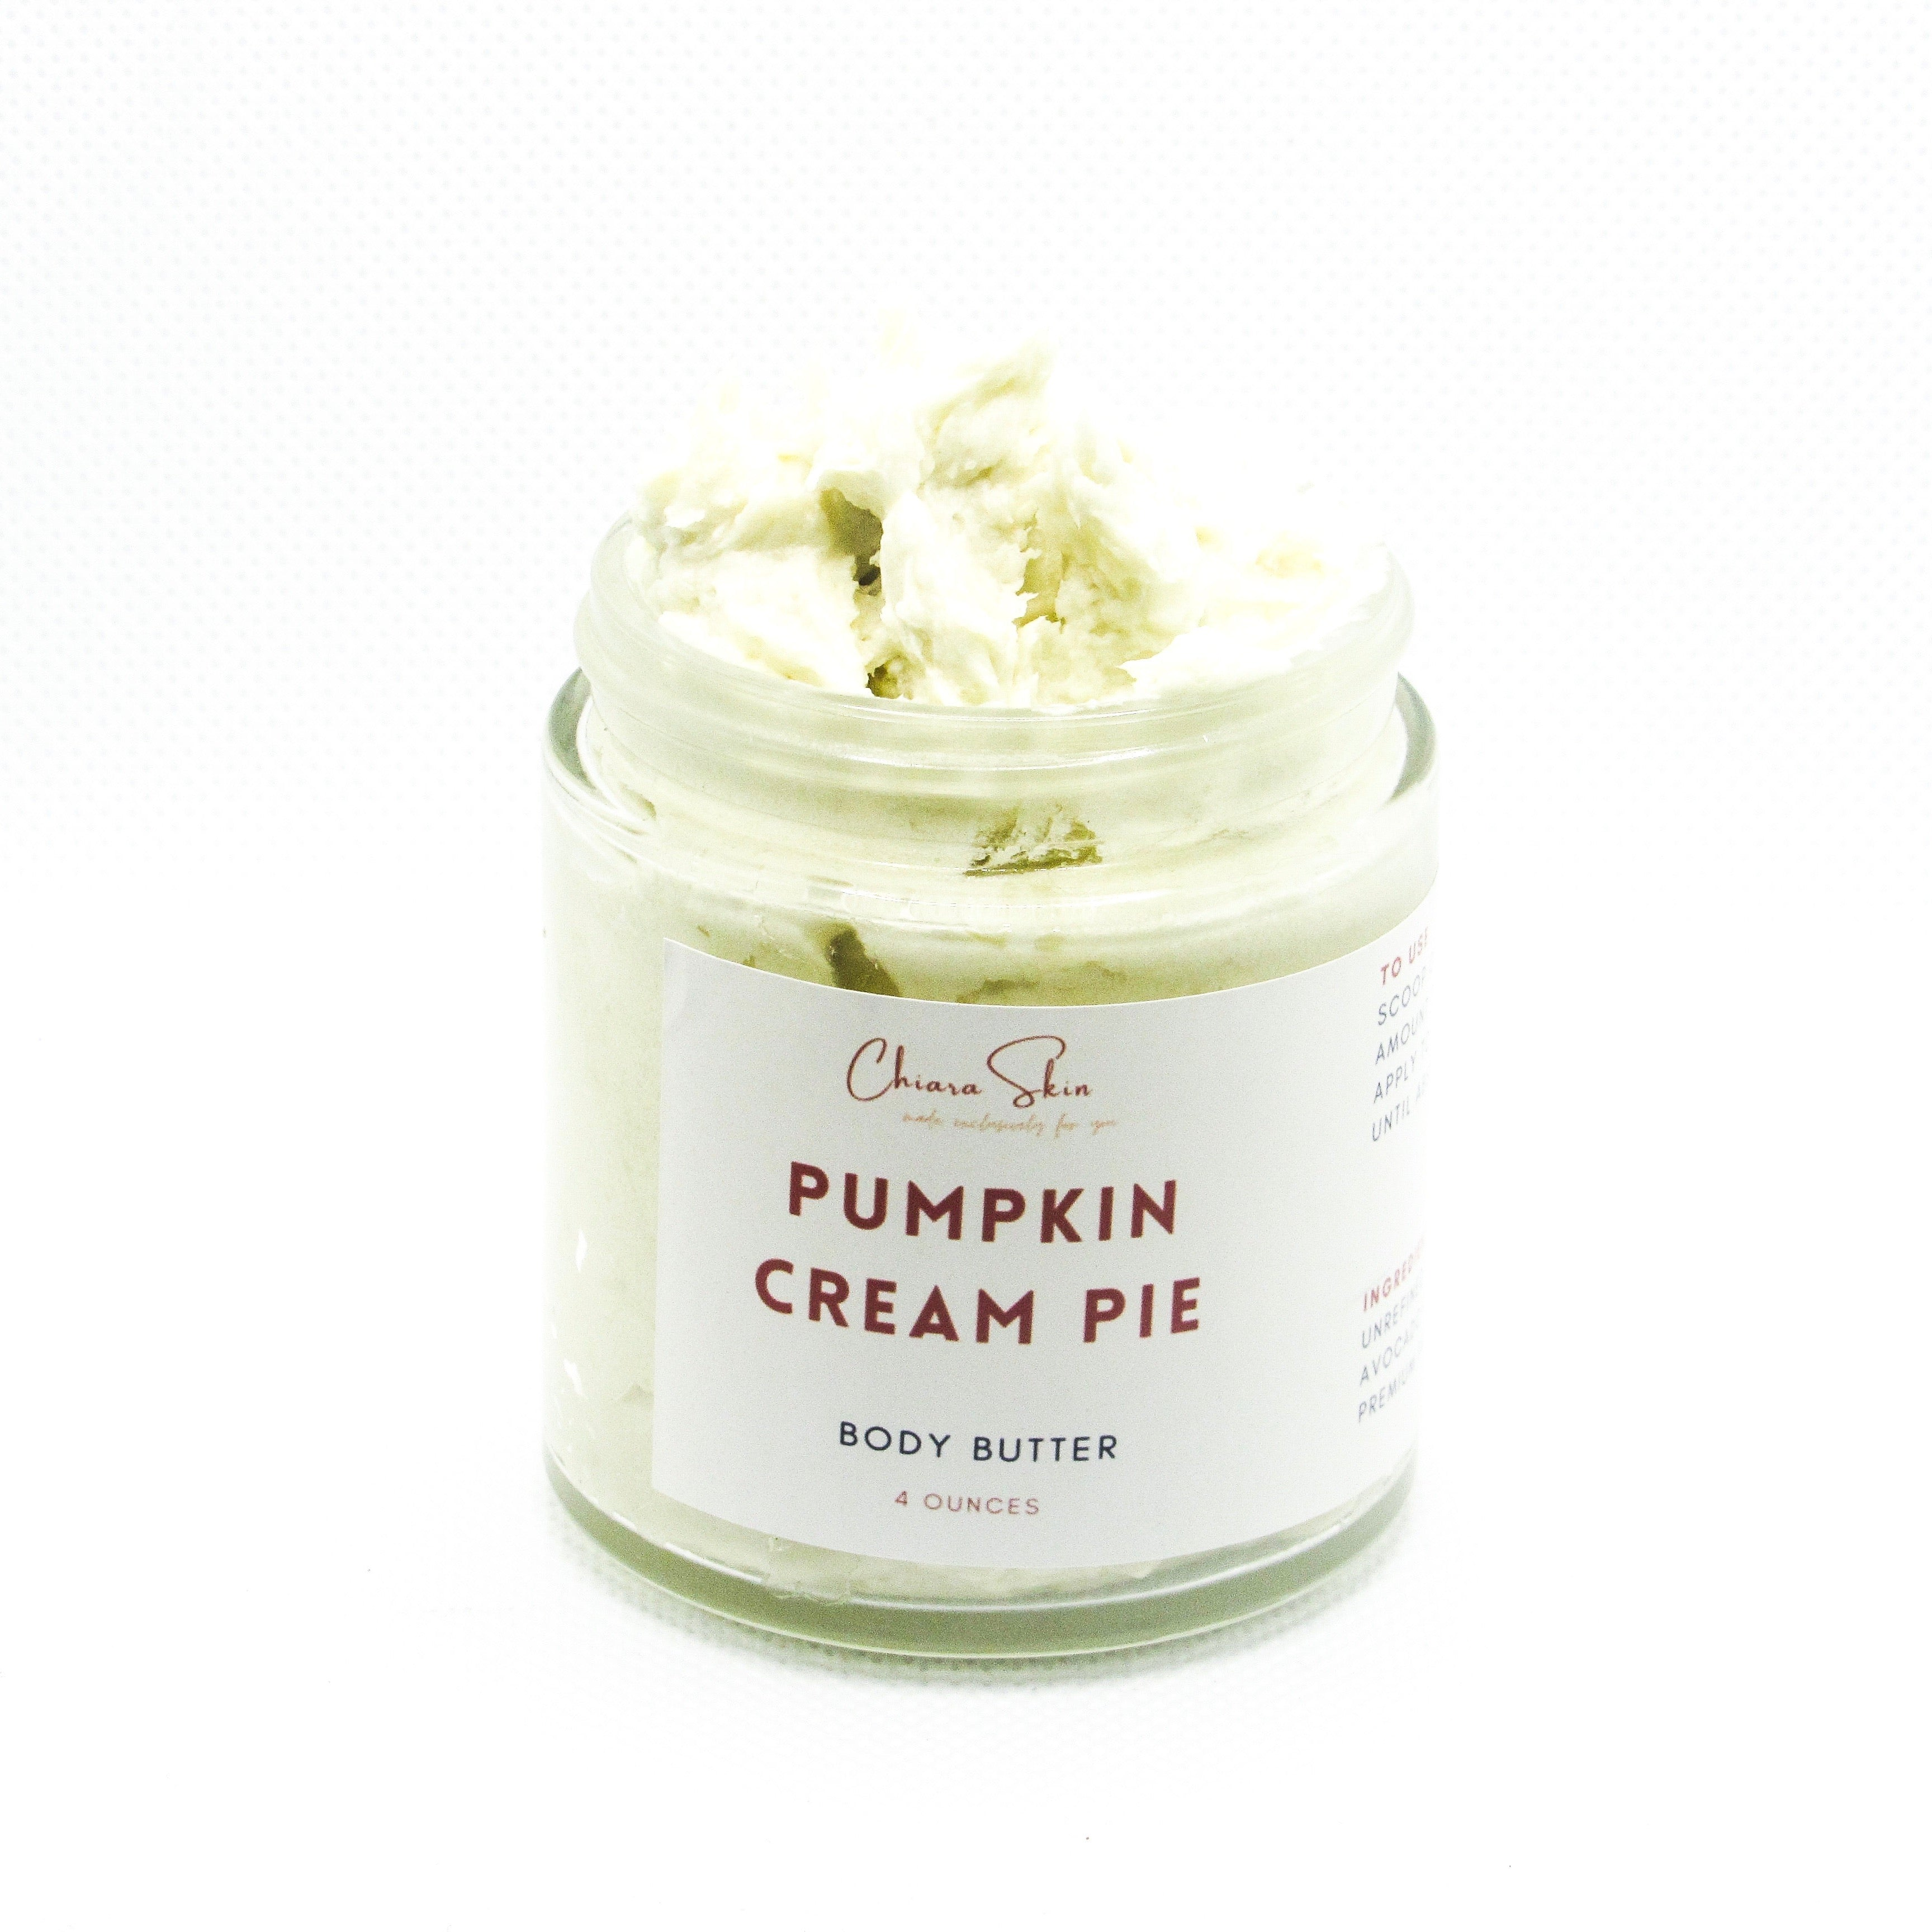 Pumpkin Cream Pie Body Butter